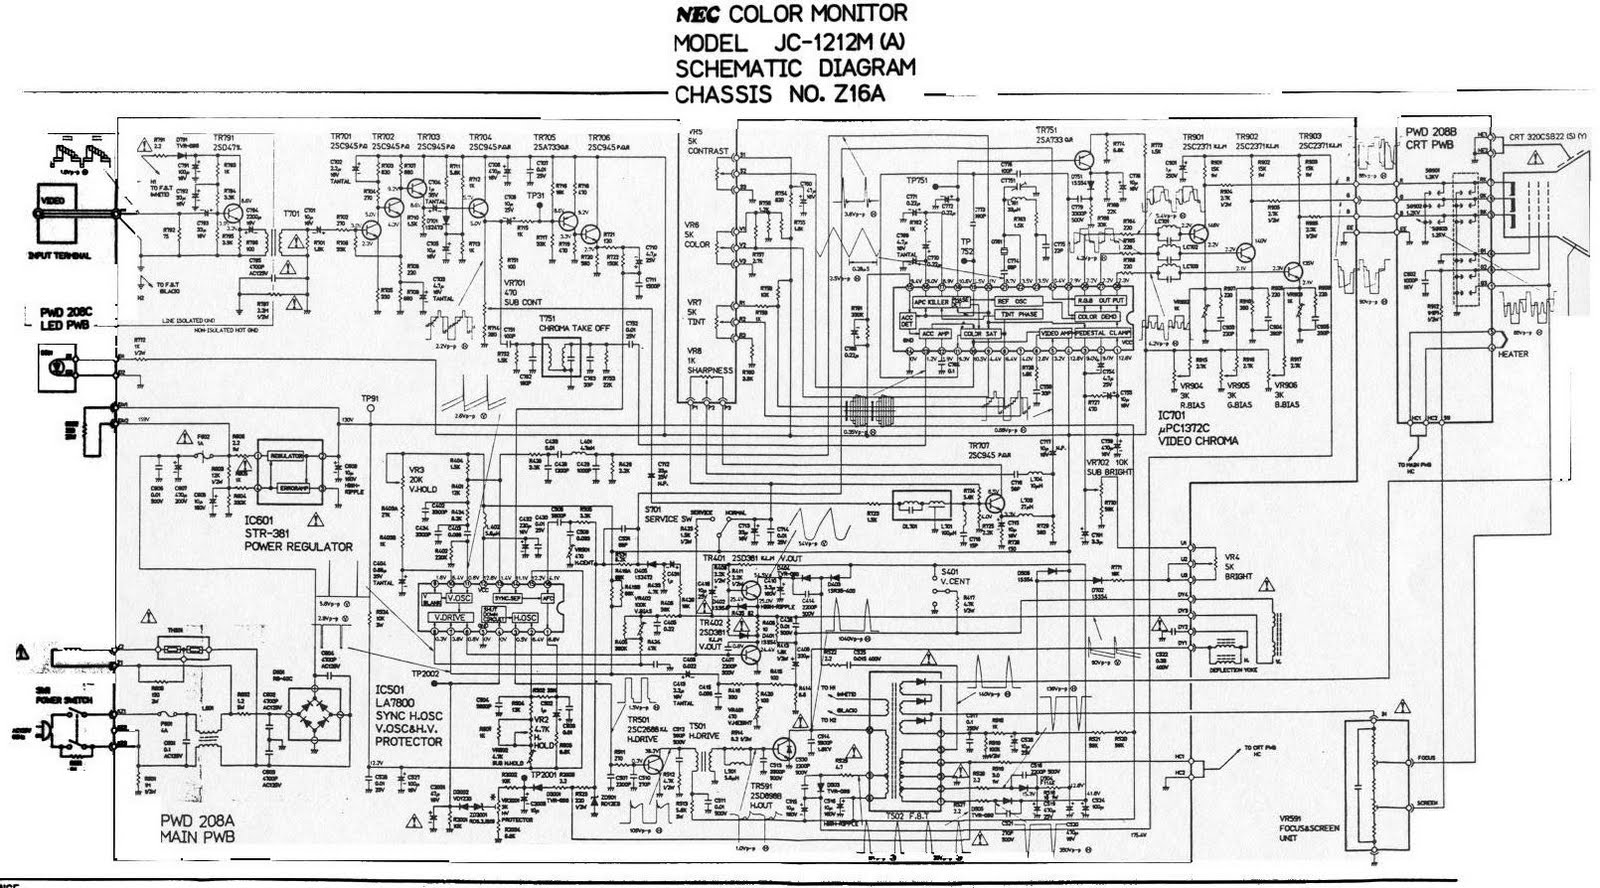 Computer Wiring Diagram Browse Data Hard Drive Schema Online Williams Bluebird 2 Slot Machine